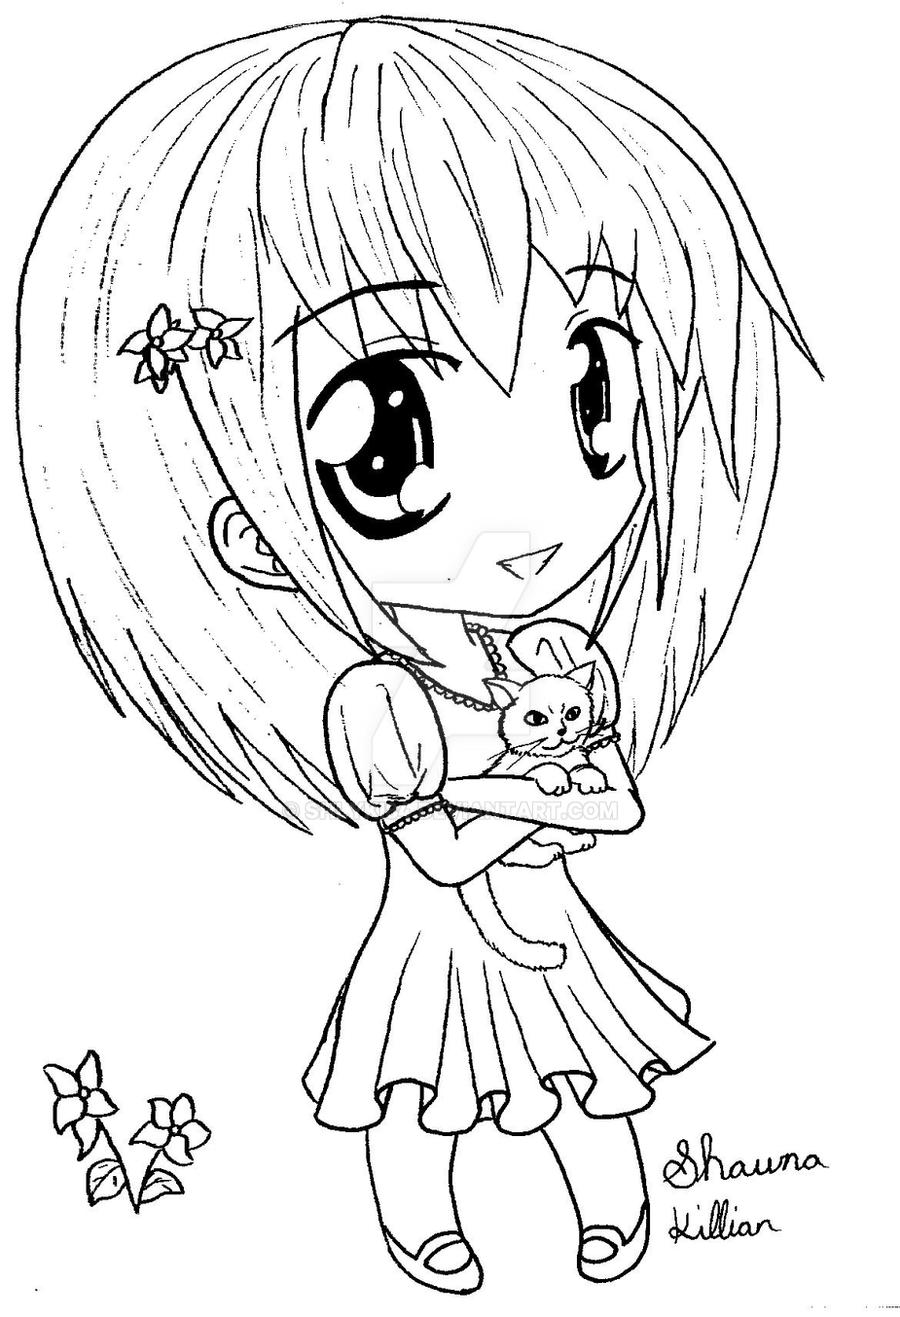 Chibi Anime Cat Drawing Happy Chibi Girl with Cat